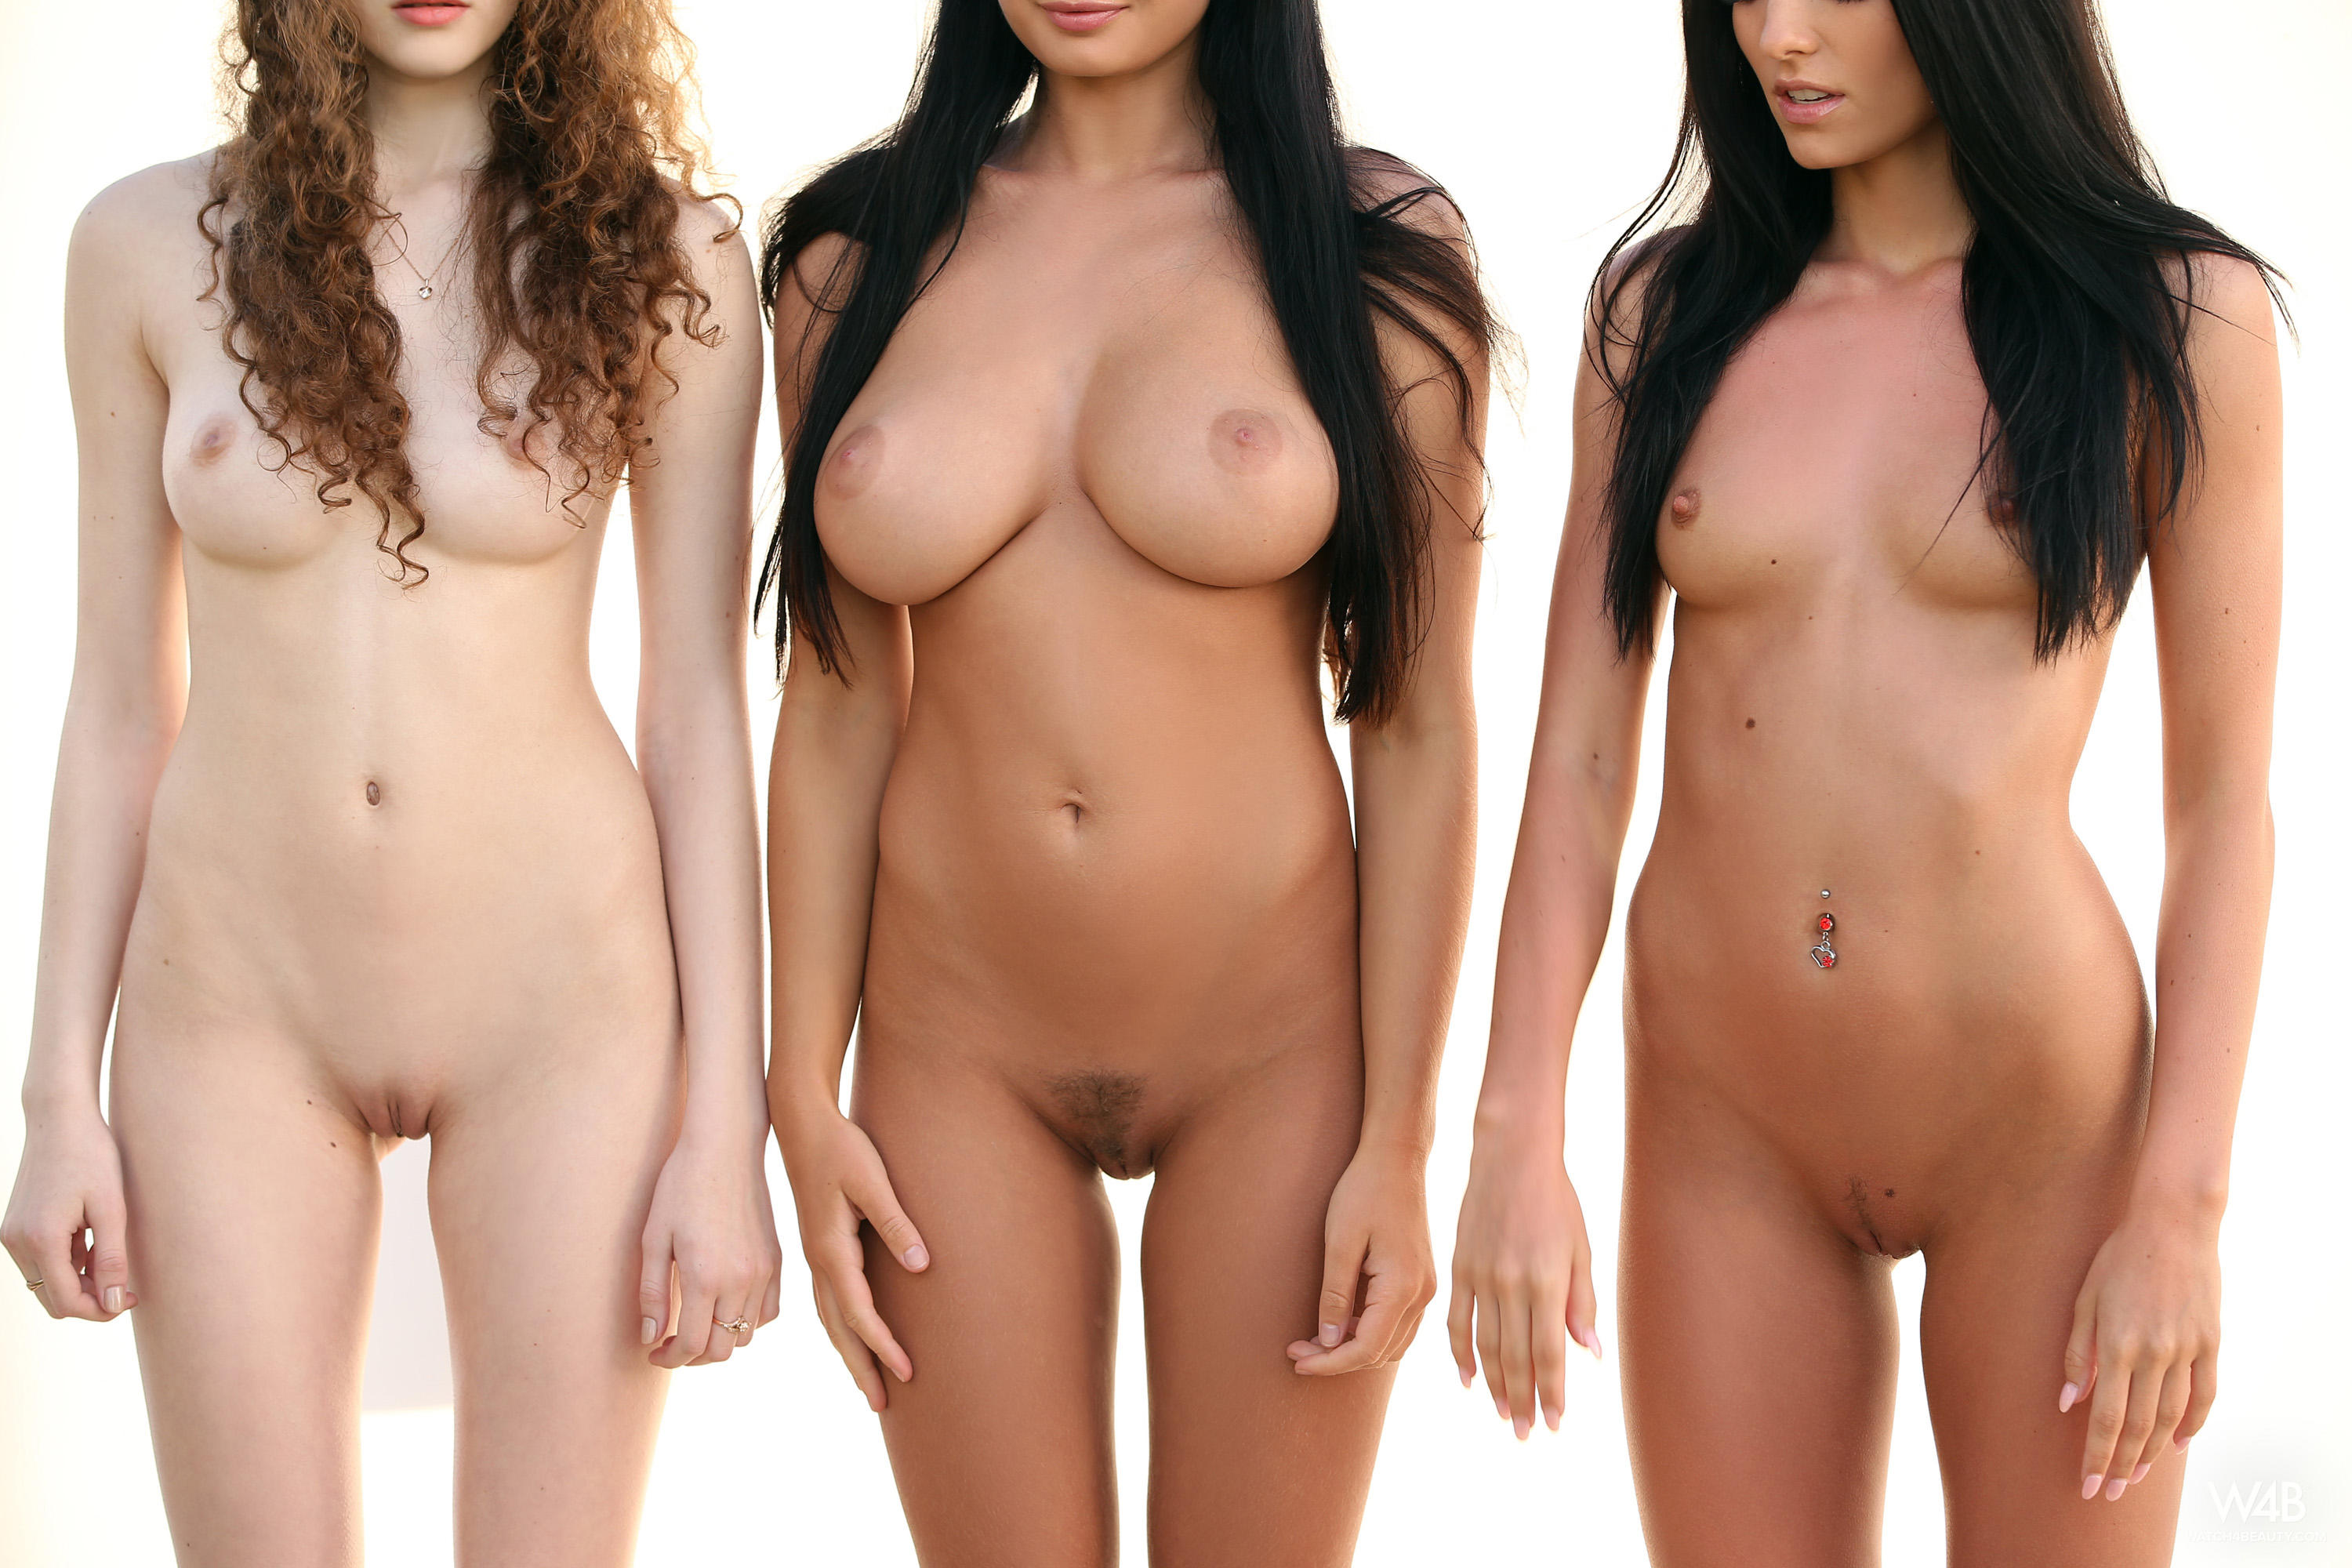 premature-girls-naked-pictures-of-women-in-the-nude